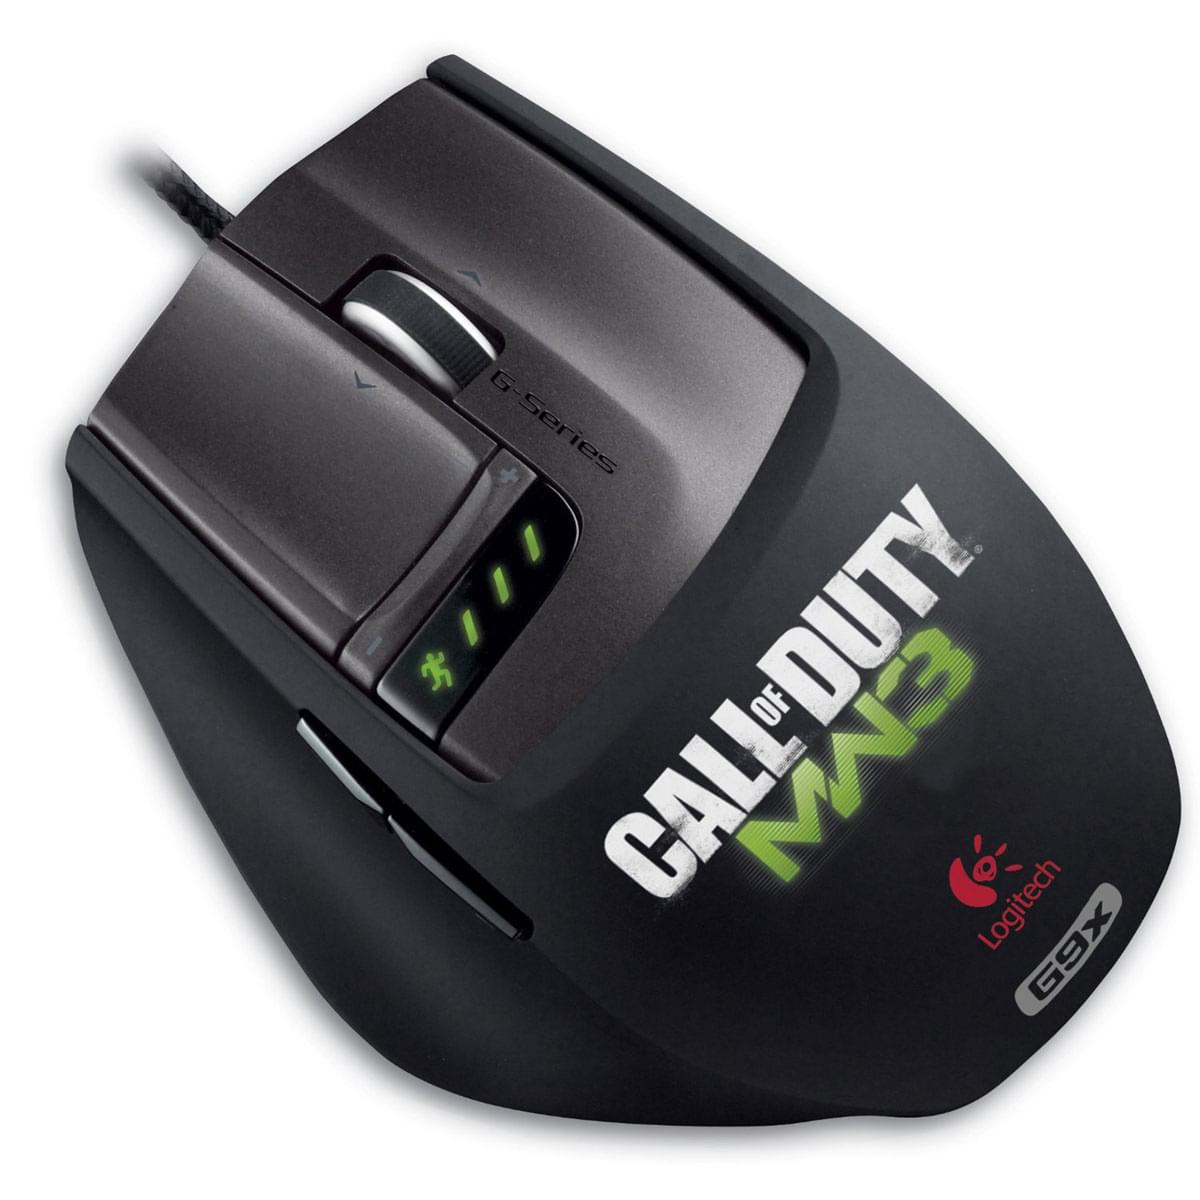 Logitech Souris PC G9X Gaming Mouse Call Of Duty MW3 - 0